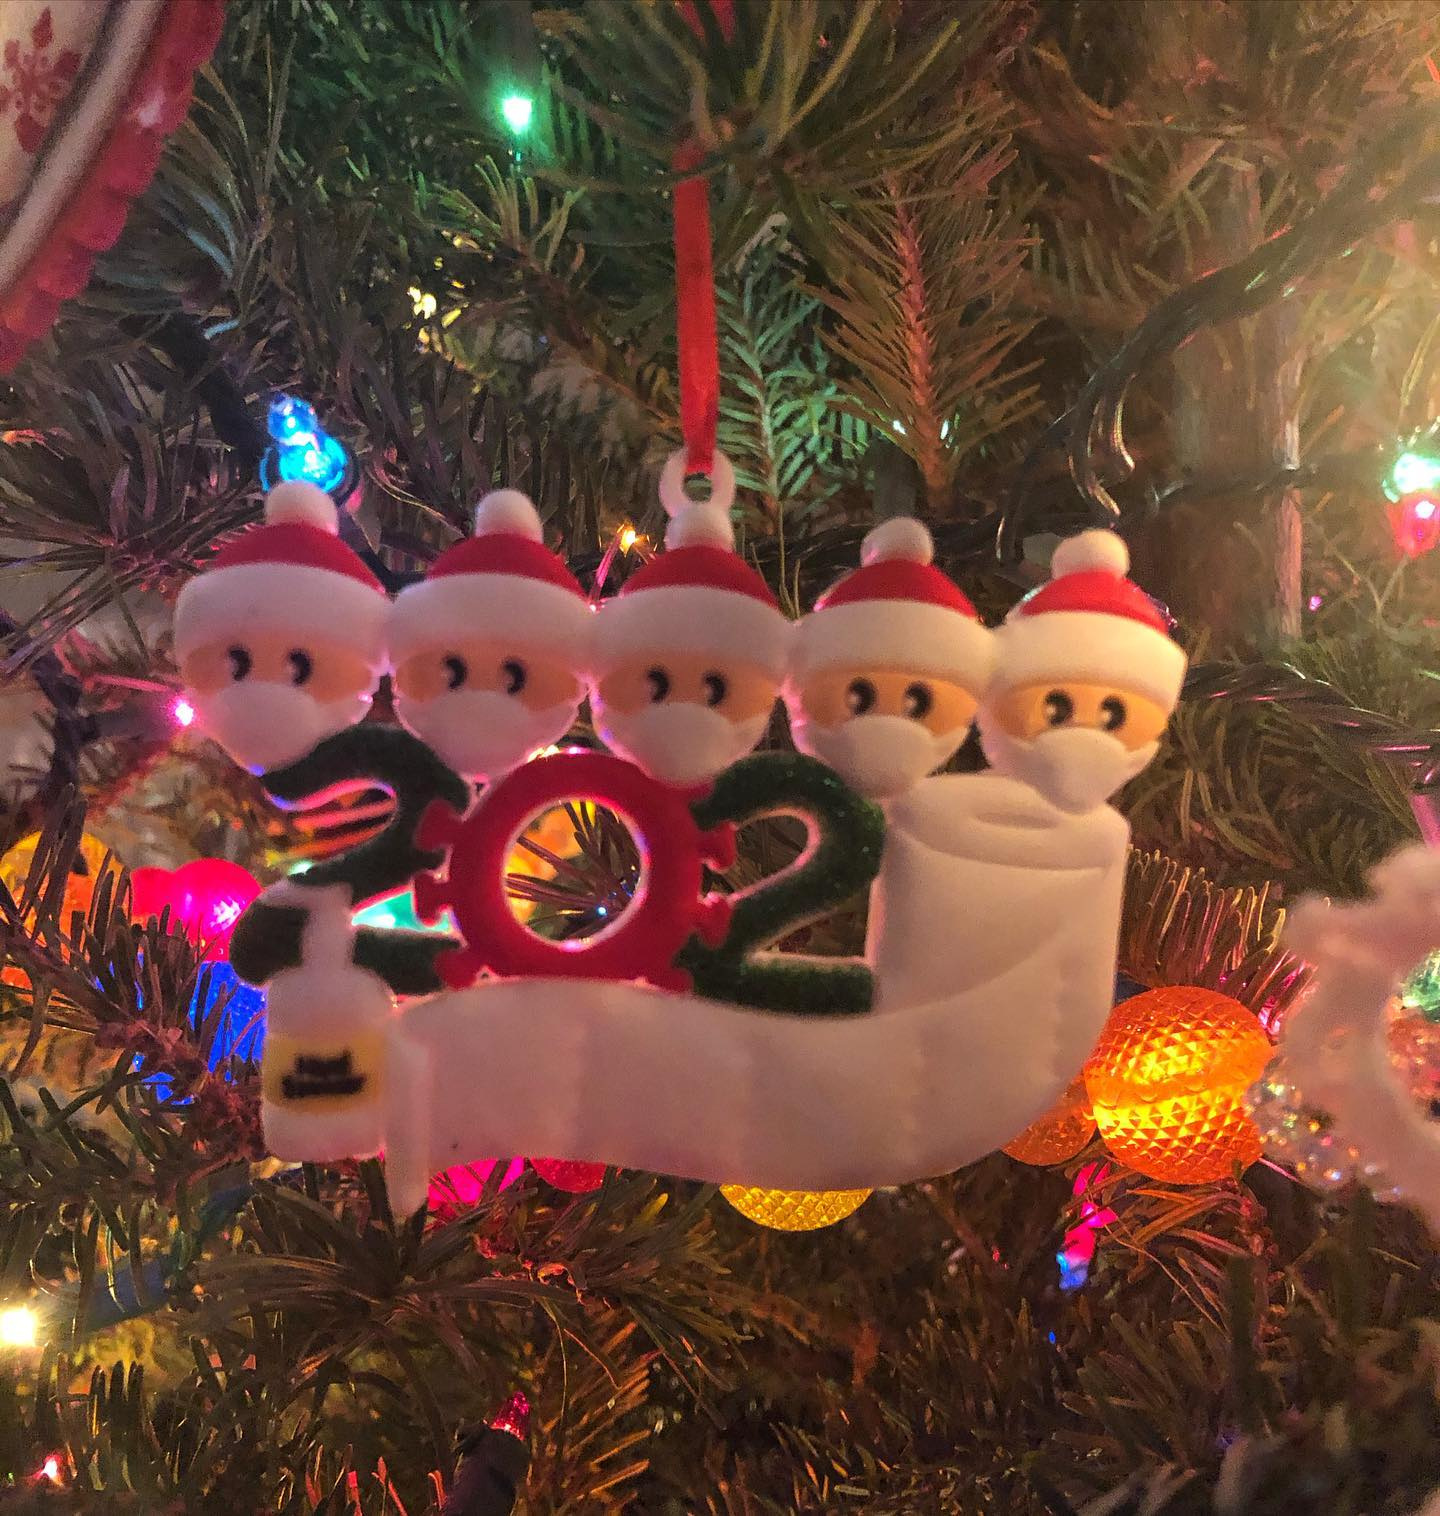 This years Christmas ornament: the second 0 in 2020 is toilet paper, the first 0 is a virus and there is a mini hand sanitizer and all the little faces are wearing masks